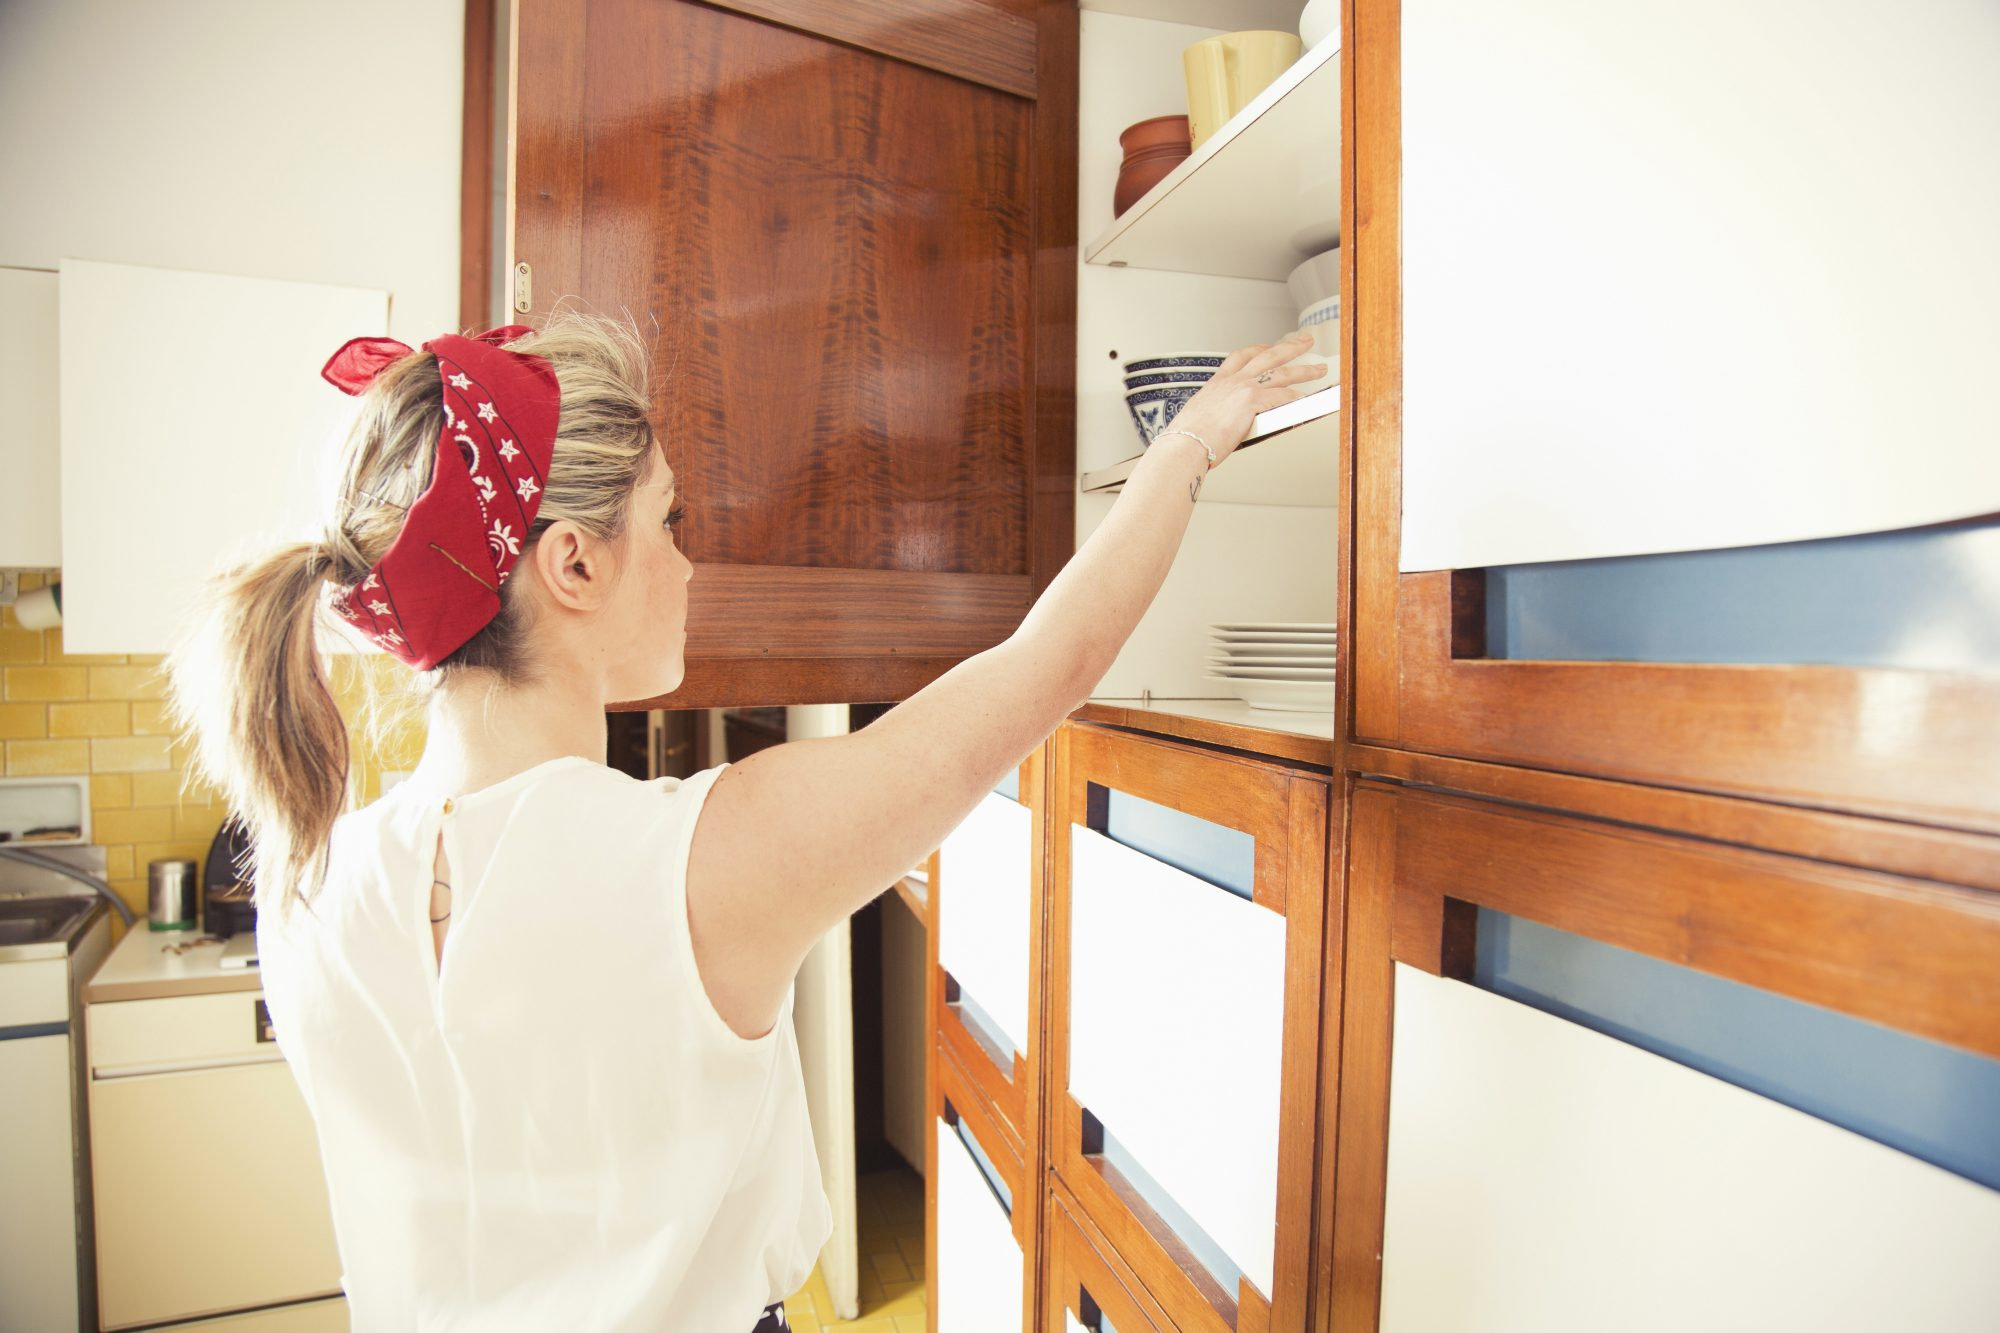 7 Internet Hacks for Organizing Your Cabinets That Actually Work